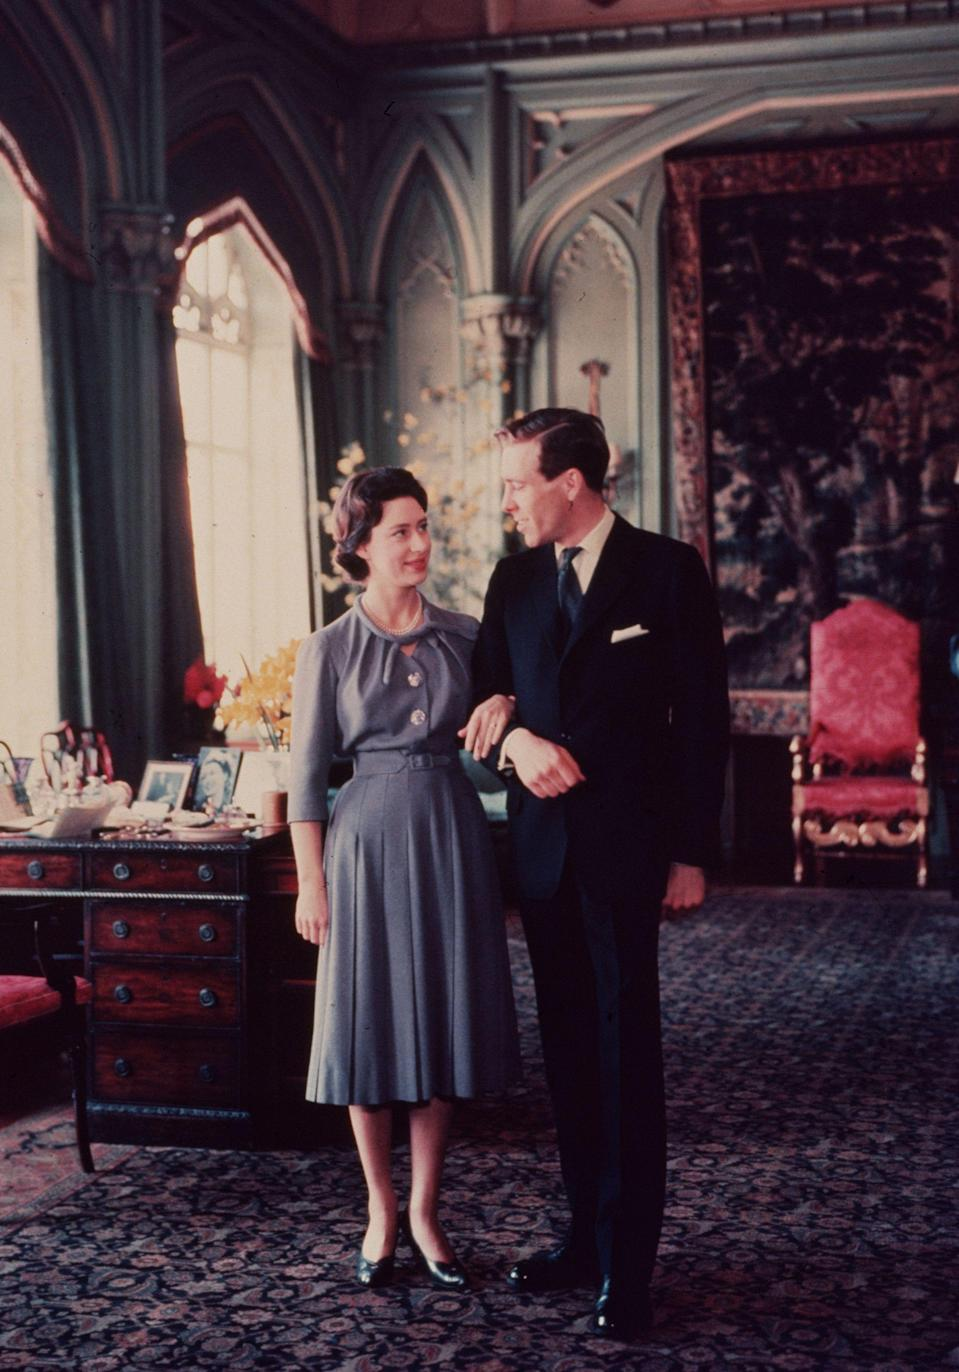 <p>Princess Margaret's engagement to photographer Antony Armstrong-Jones took the media circuit by surprise as she had worked hard to keep the romance under wraps.<br>After her first engagement to Peter Townsend was rejected by the Church of England due to his previous divorce, the princess accepted a proposal from Lord Snowdon.<br><br>The couple announced their engagement on 26 February 1960 and their nuptials were the first to be broadcast on television drawing in over 300 million viewers worldwide. Her engagement ring featured a rosebud-shaped ruby designed to honour her middle name, Rose. <em>[Photo: Getty]</em> </p>